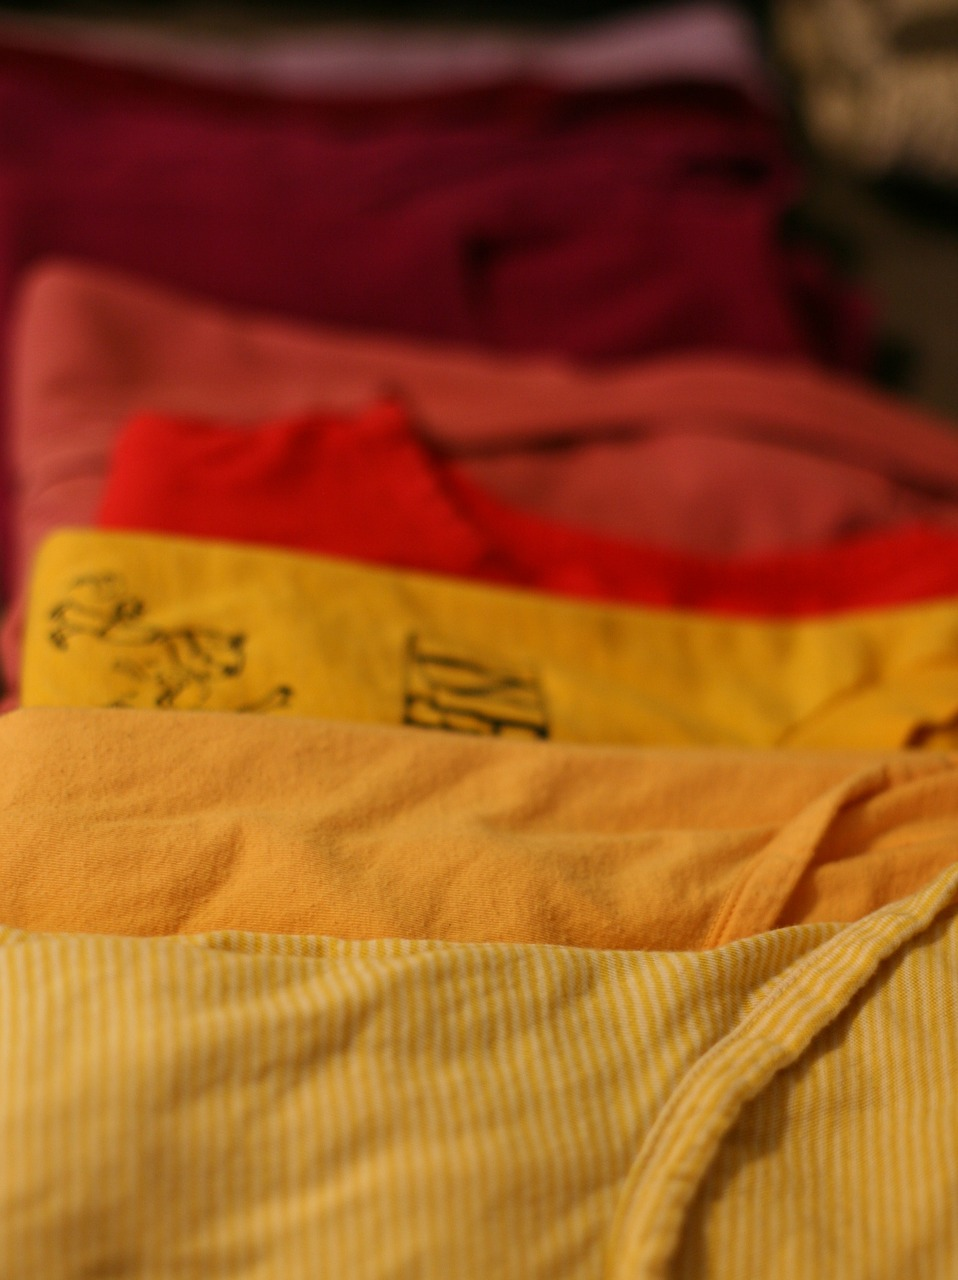 Get odors out of laundry